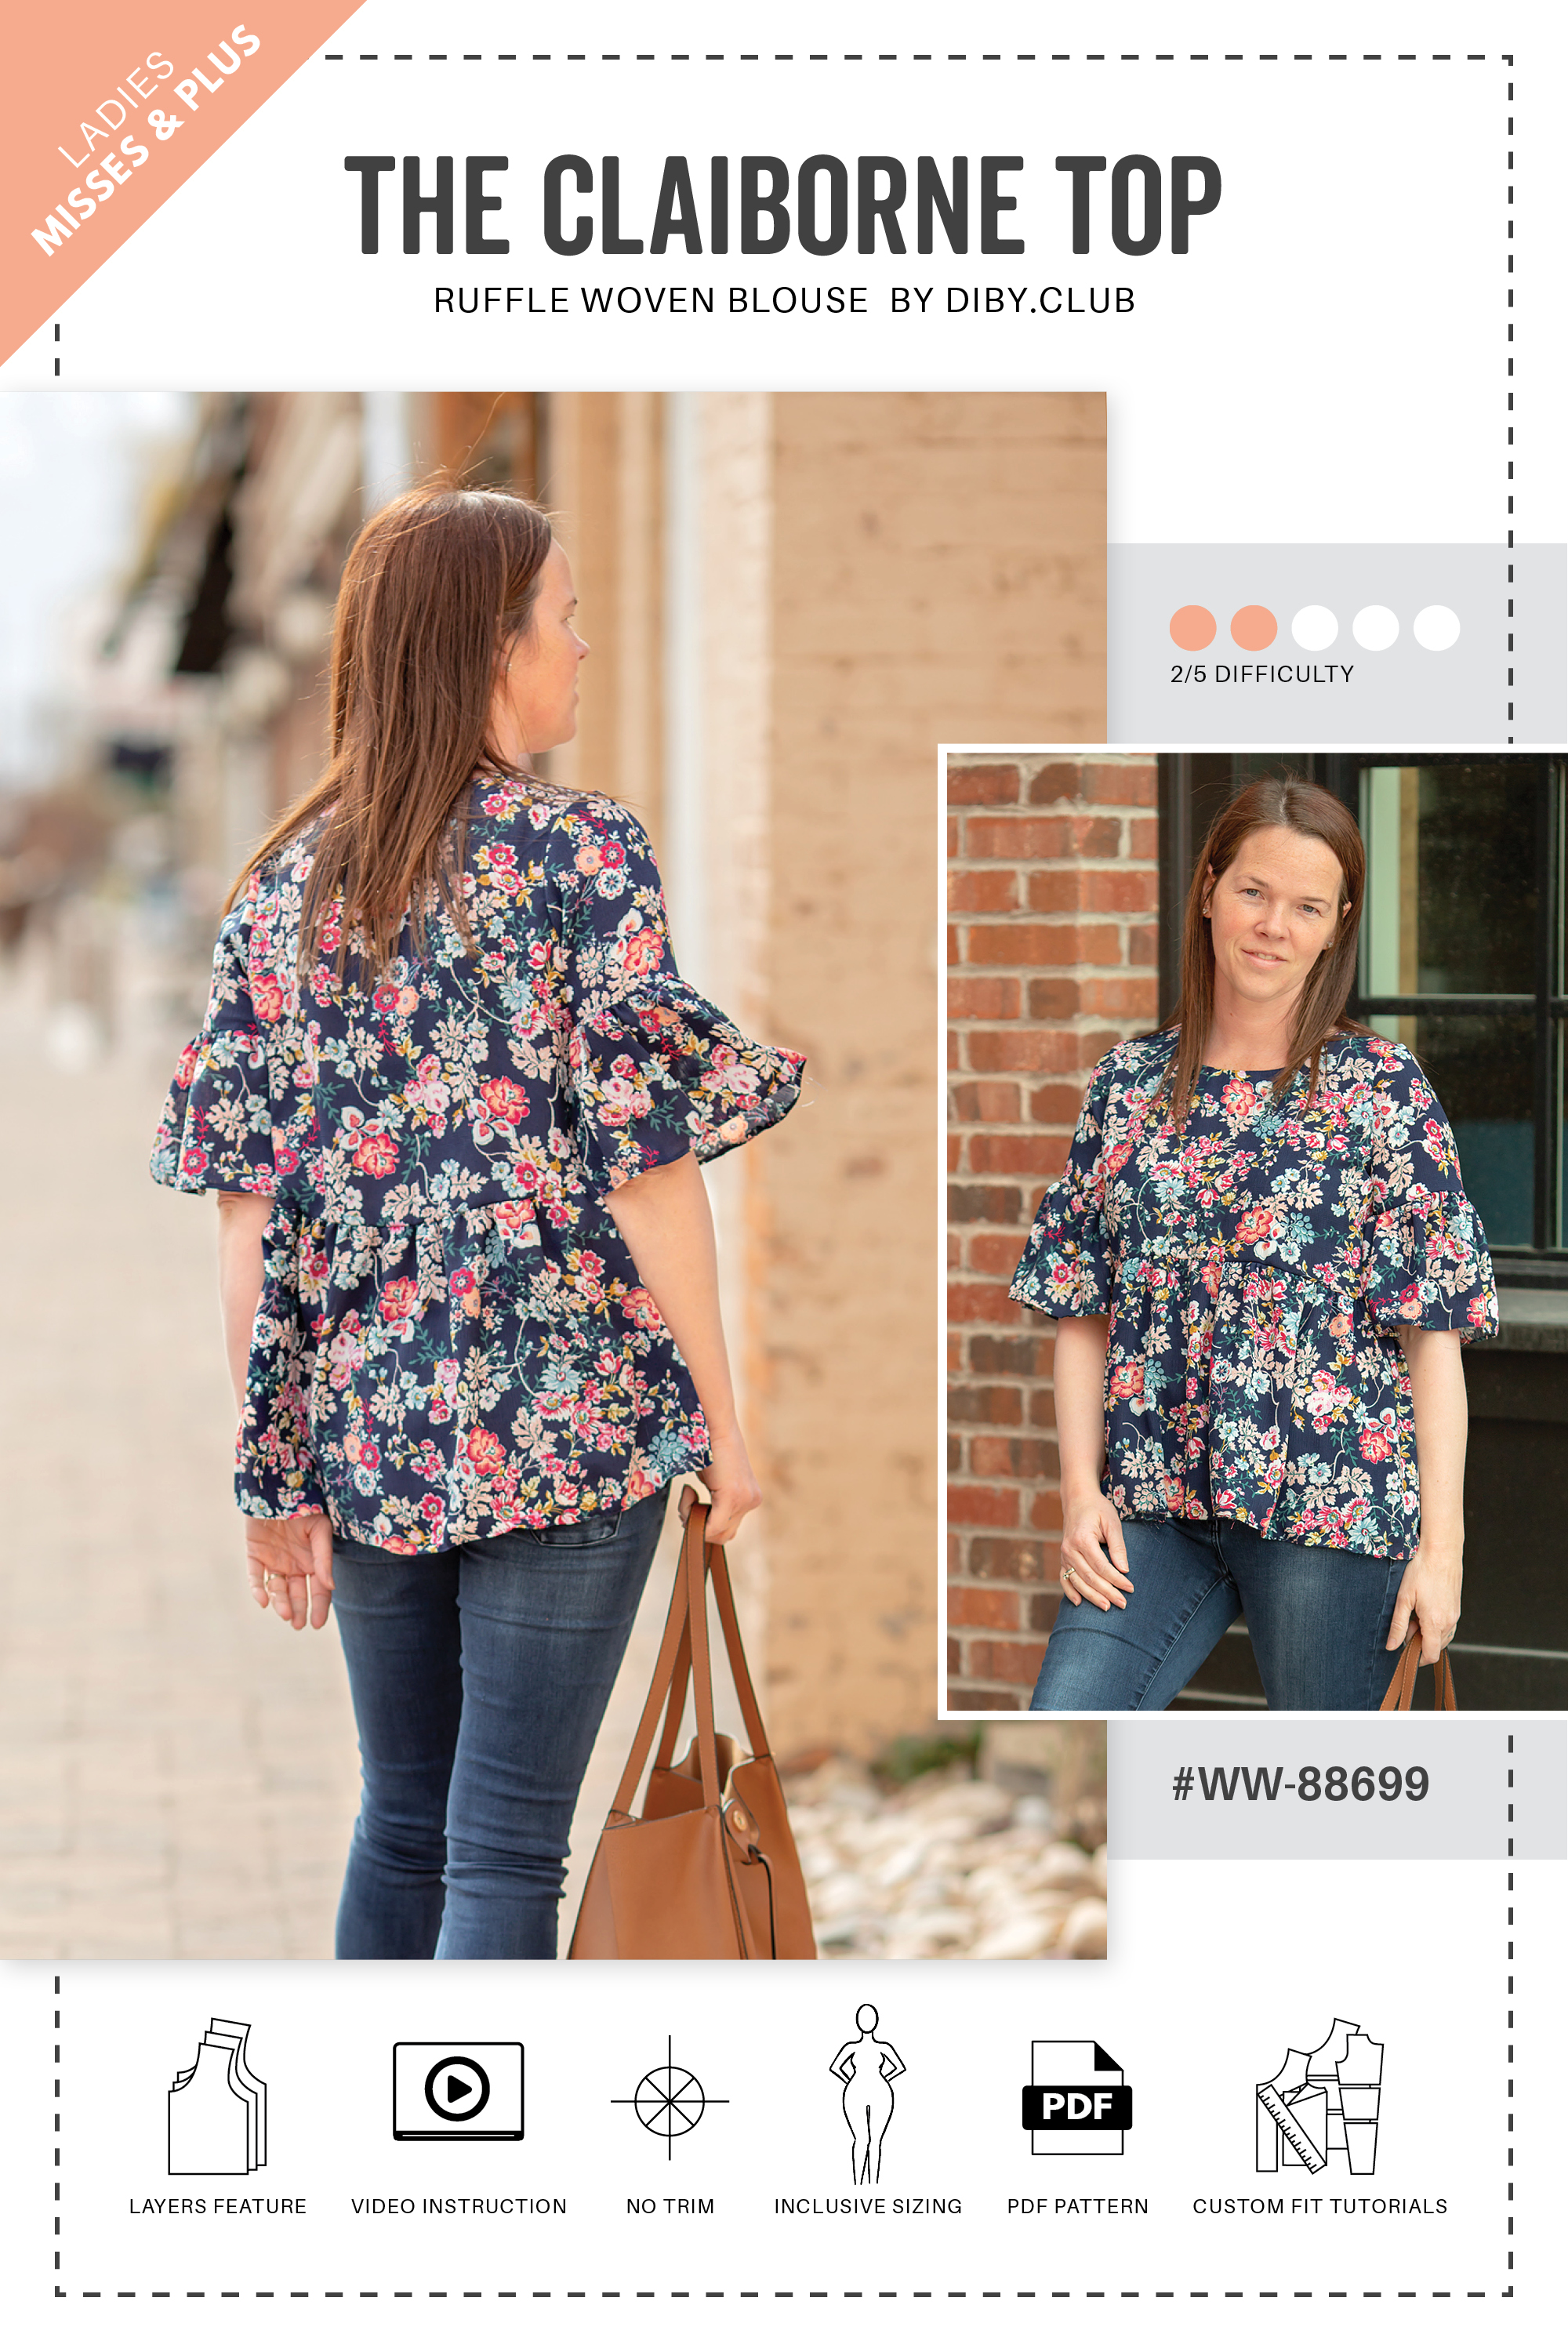 490e8fa73bf The Claiborne Ruffle Top Womens Sewing Pattern Web Cover. Double tap to zoom